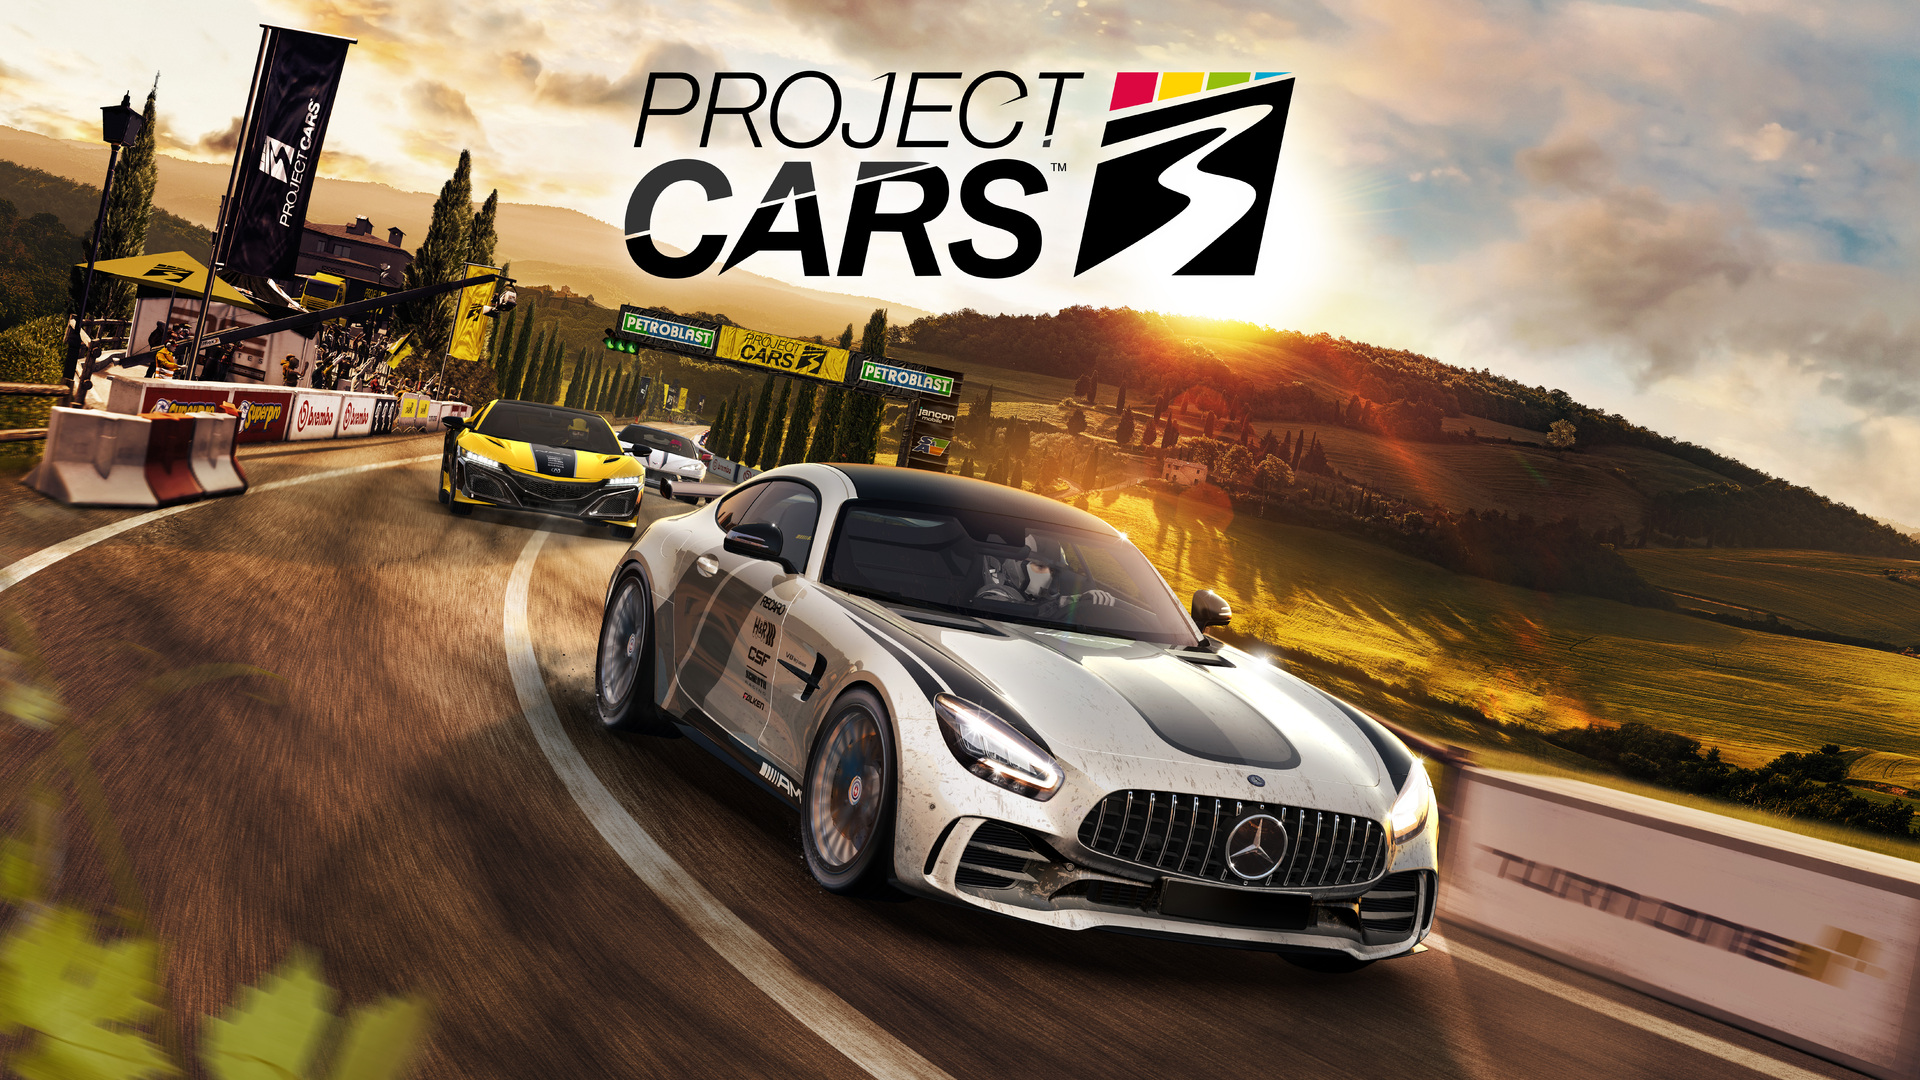 Project Cars 3 Trailer